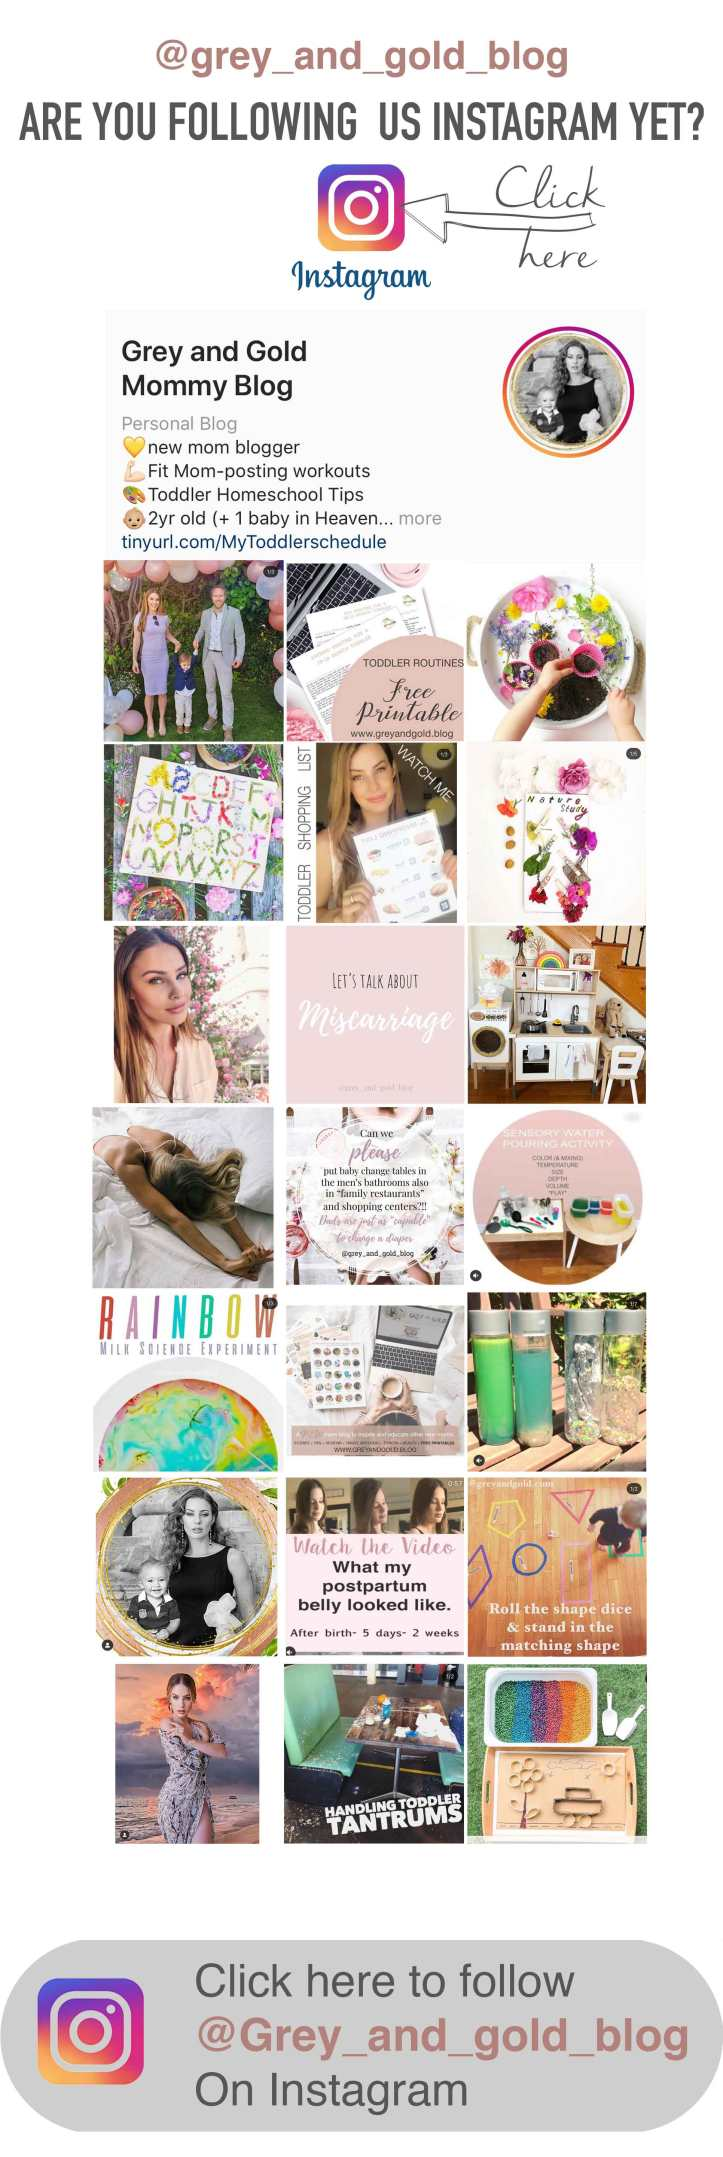 Follow-Grey_and_gold_blog-on-instagram-for-mommy-content